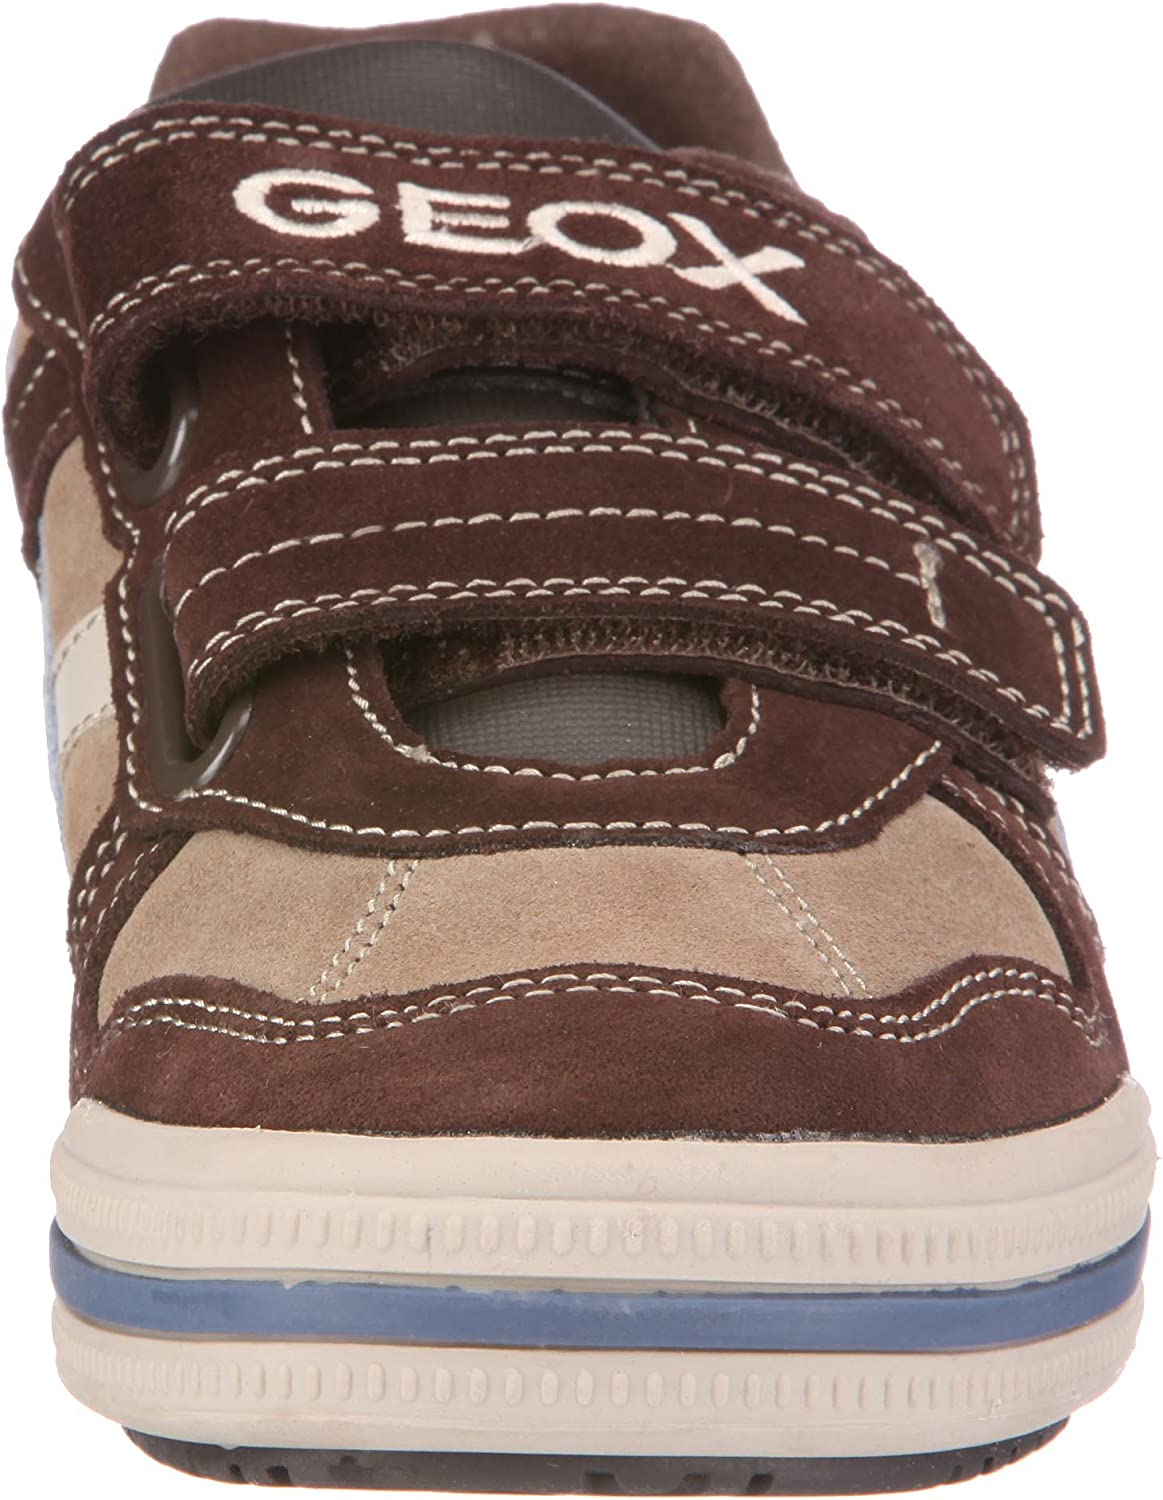 Geox Toddler Jr Elvis Casual Shoe